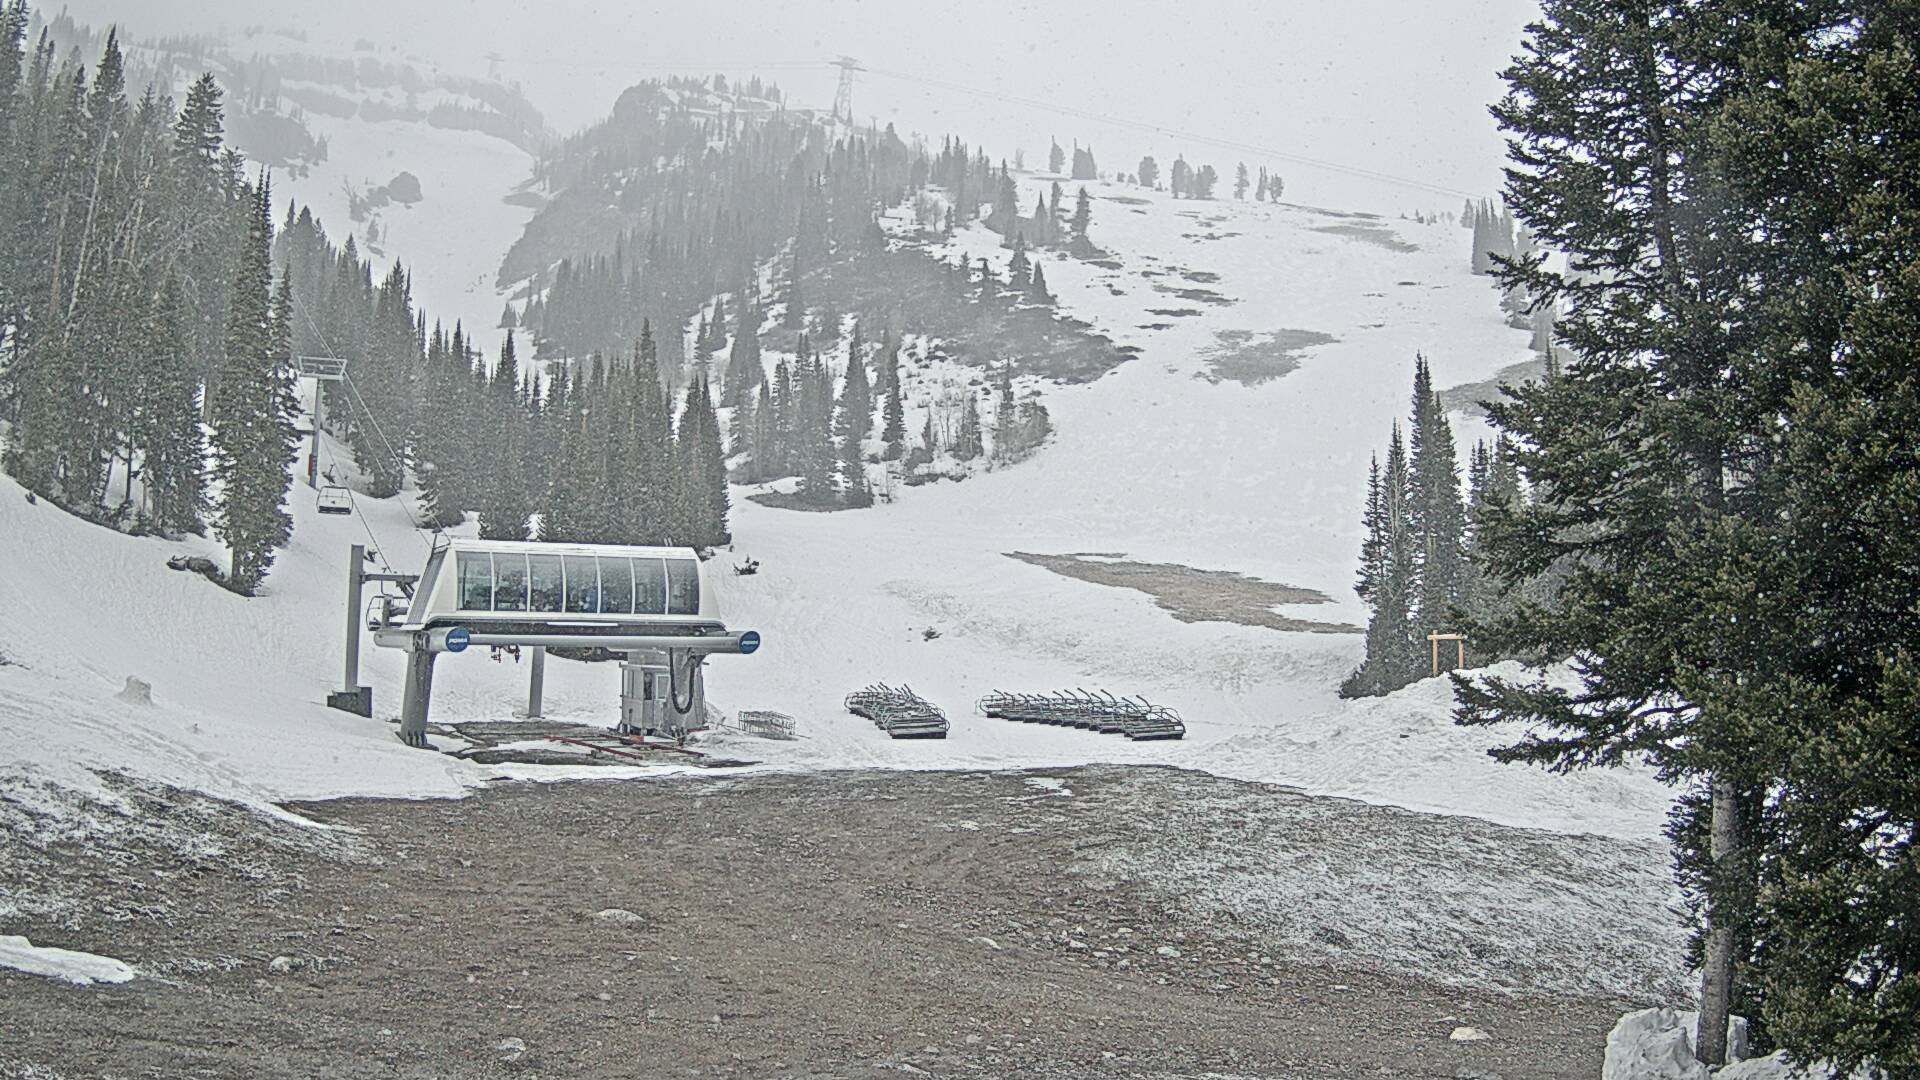 JHMR Top of Thunder Lift - Wyoming